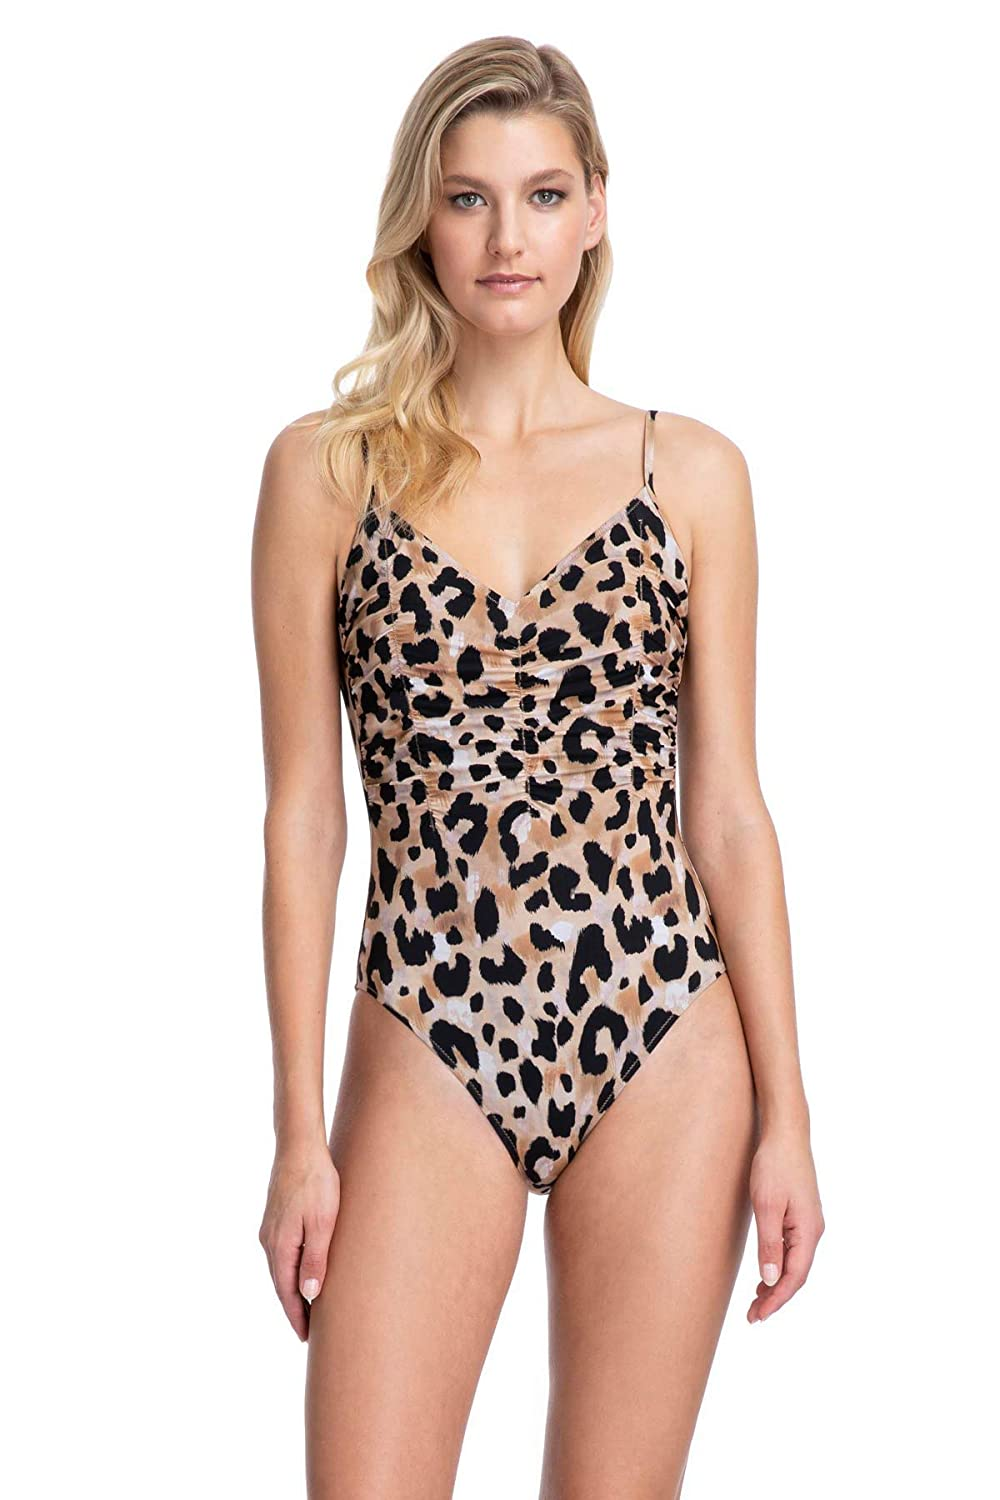 Gottex Womens Thin Strap V-Neck One Piece Swimsuit